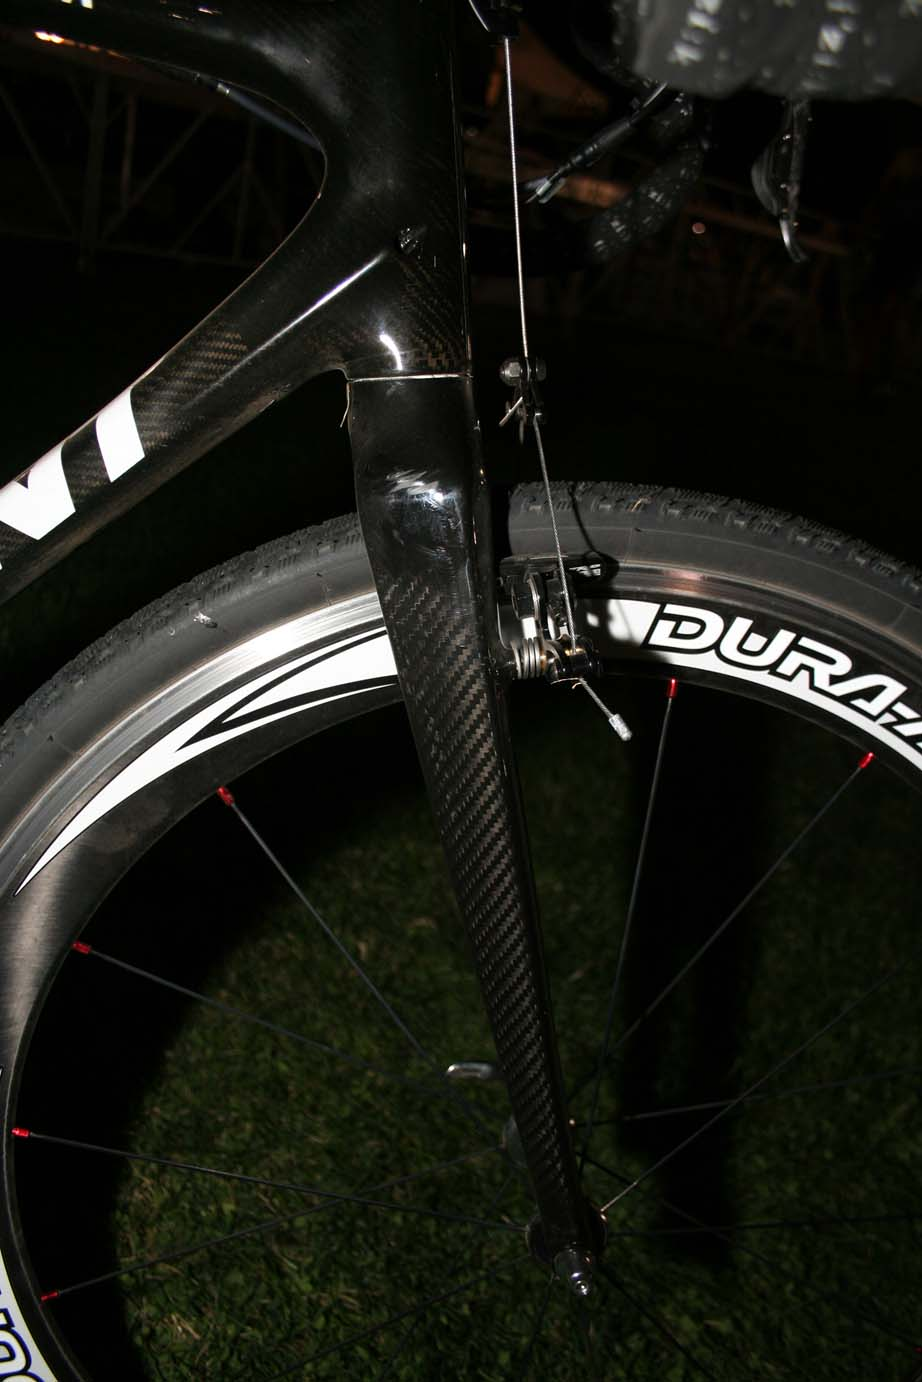 Deep dish Shimano Dura-Ace wheels provided extra speed on the flat course. by Andrew Yee